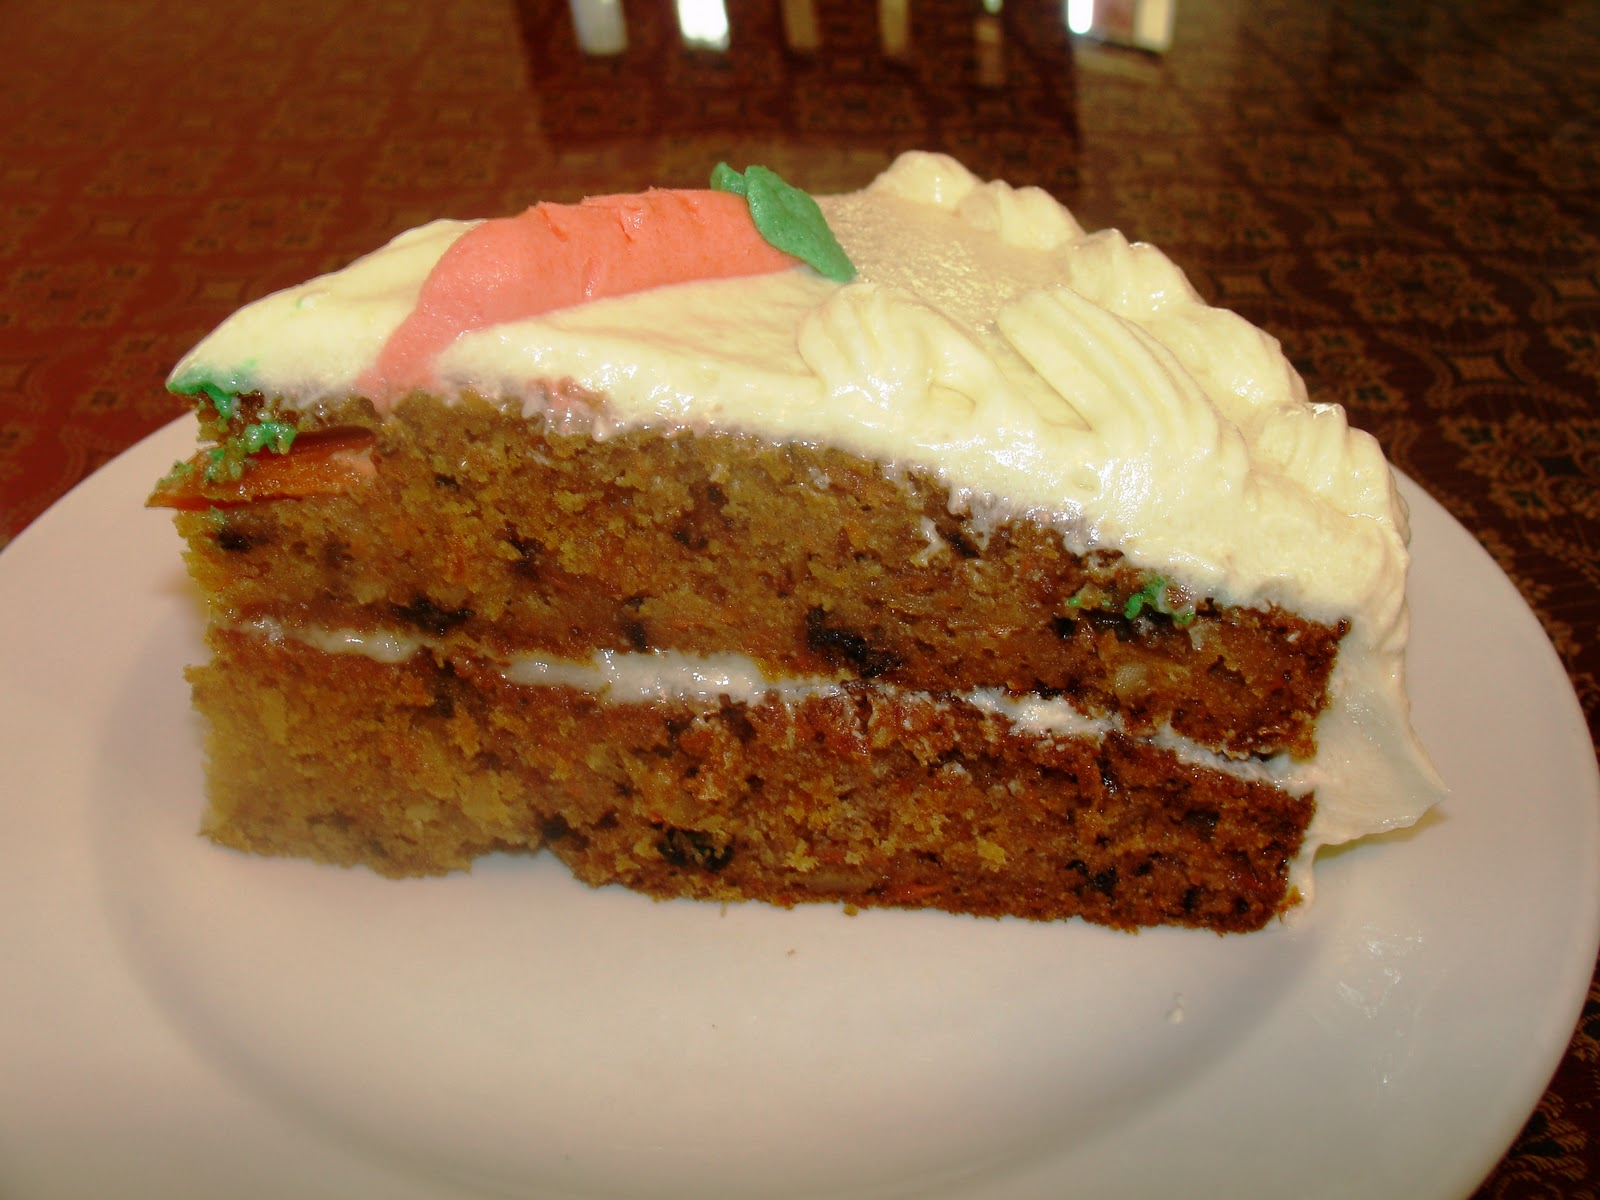 shaeryscake: Carrot cake with cream cheese frosting